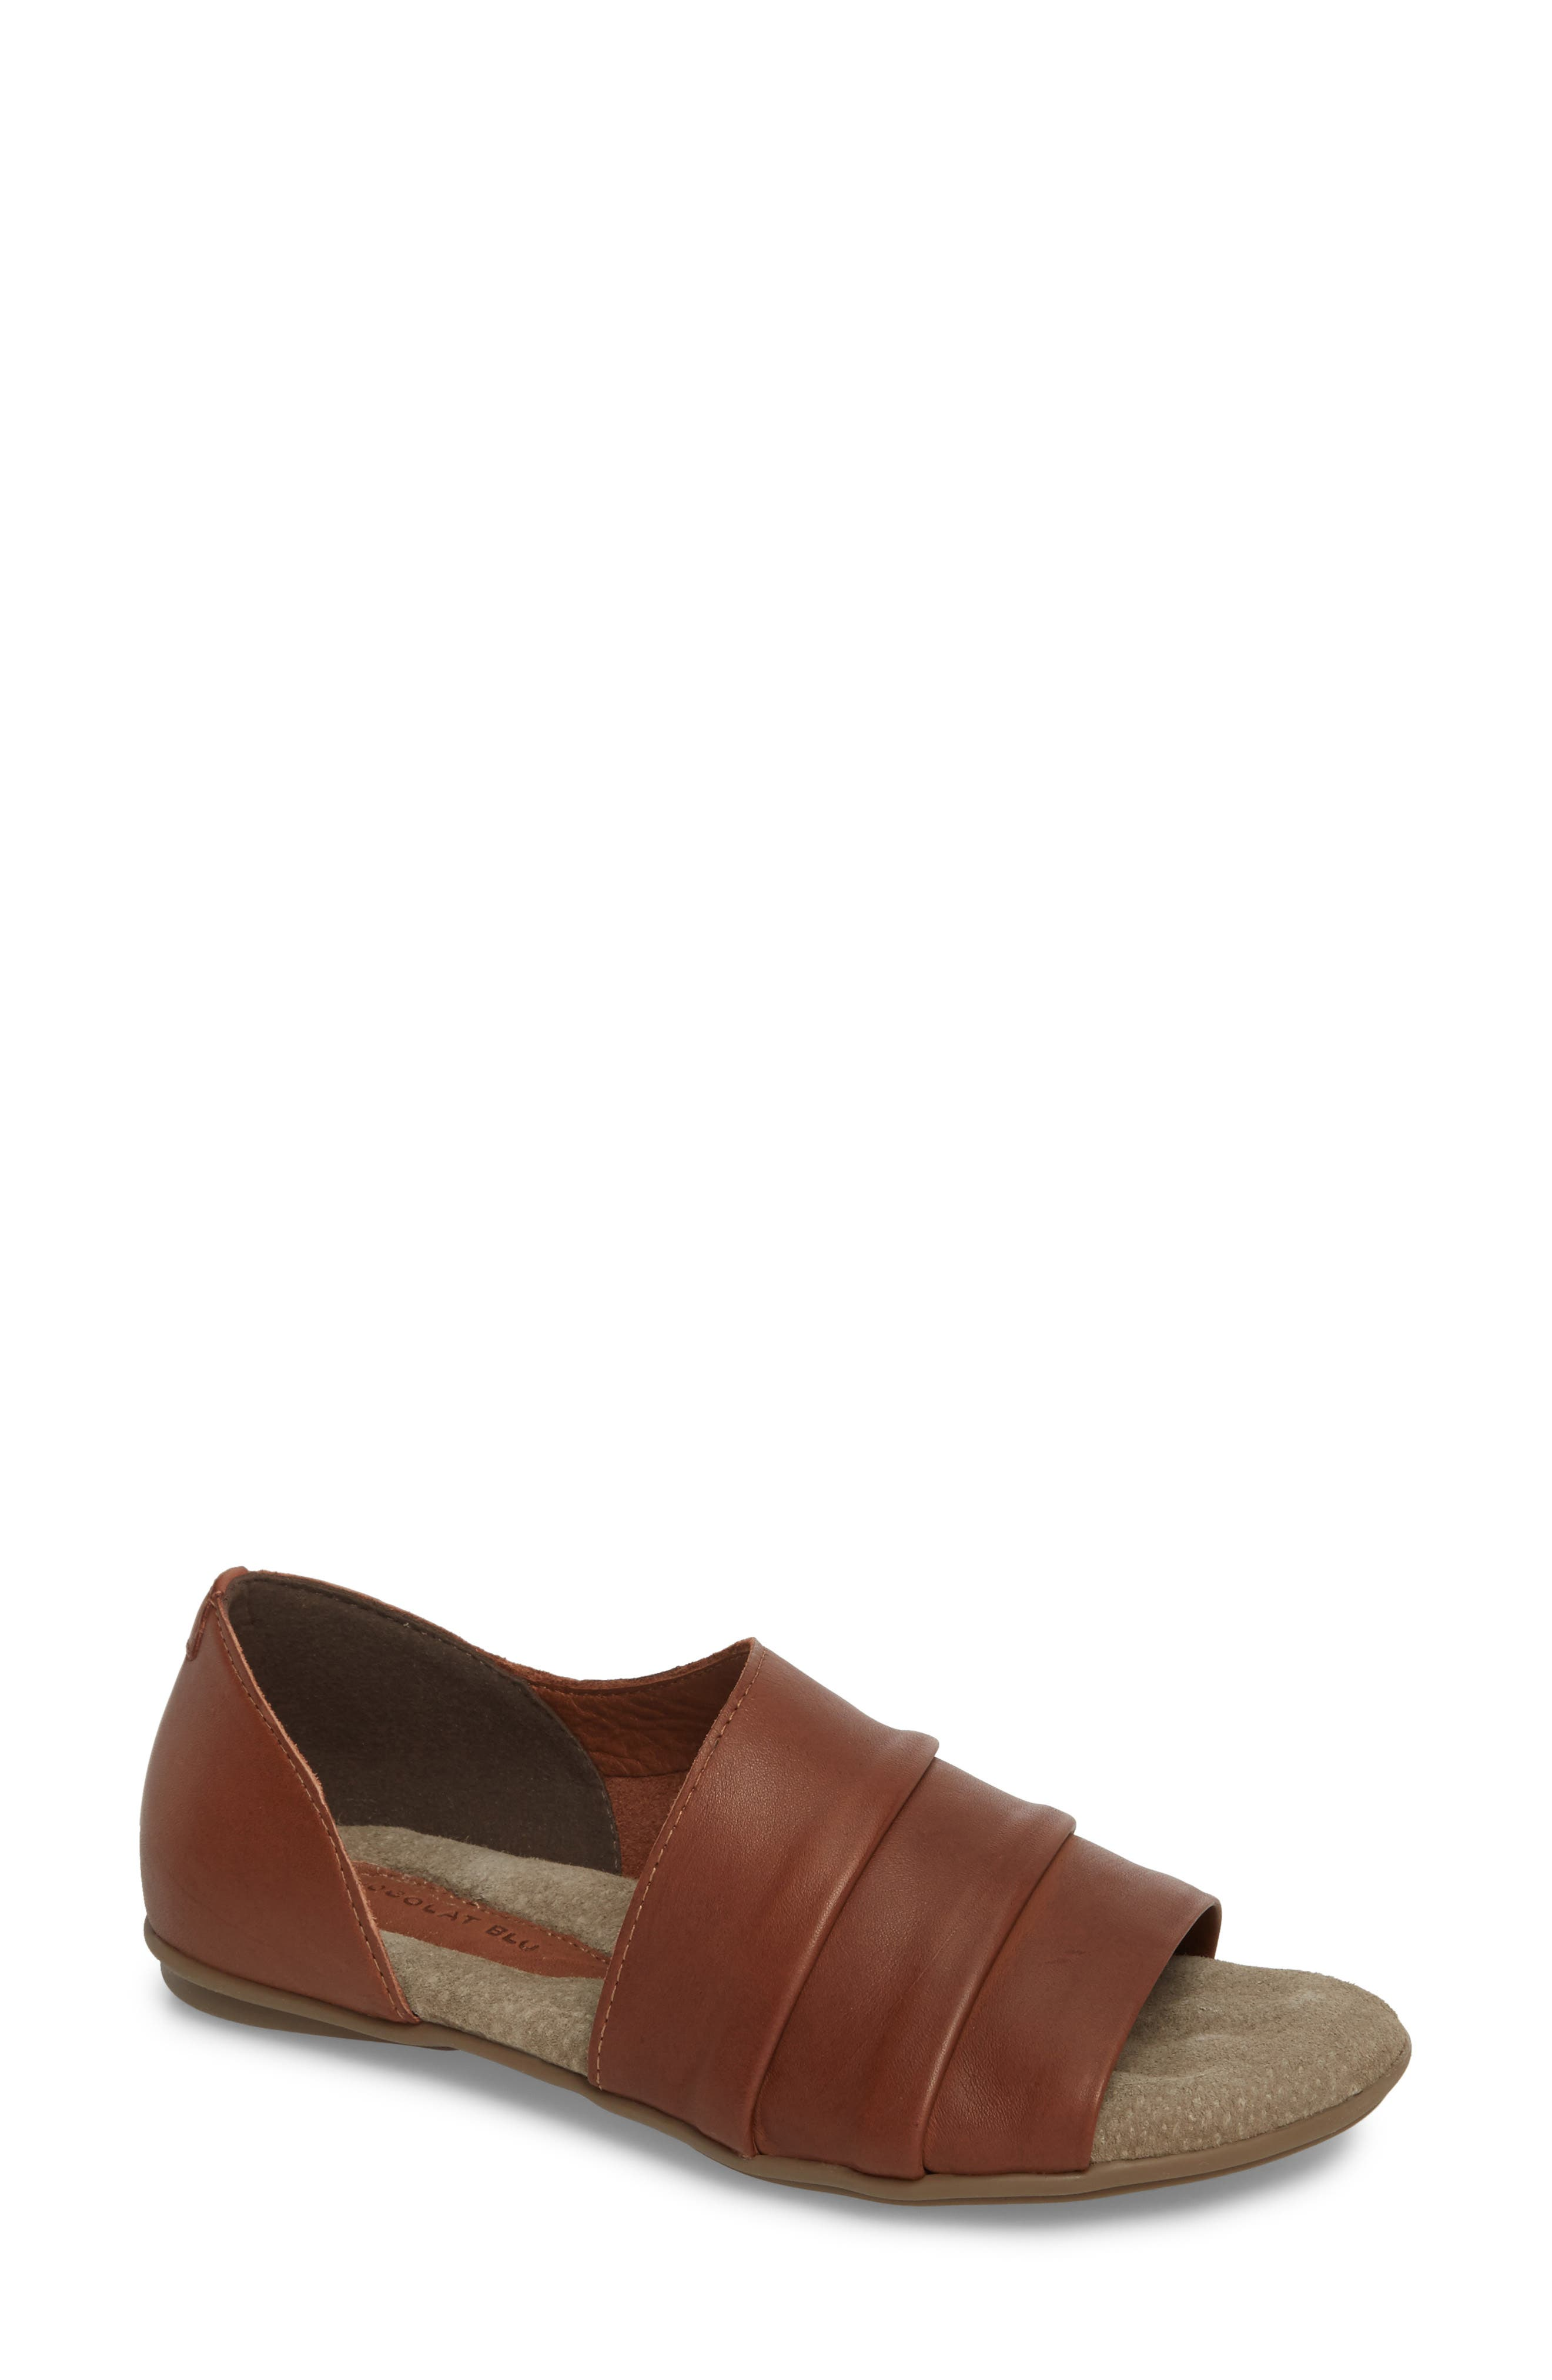 Bronte Flat,                         Main,                         color, CAMEL LEATHER